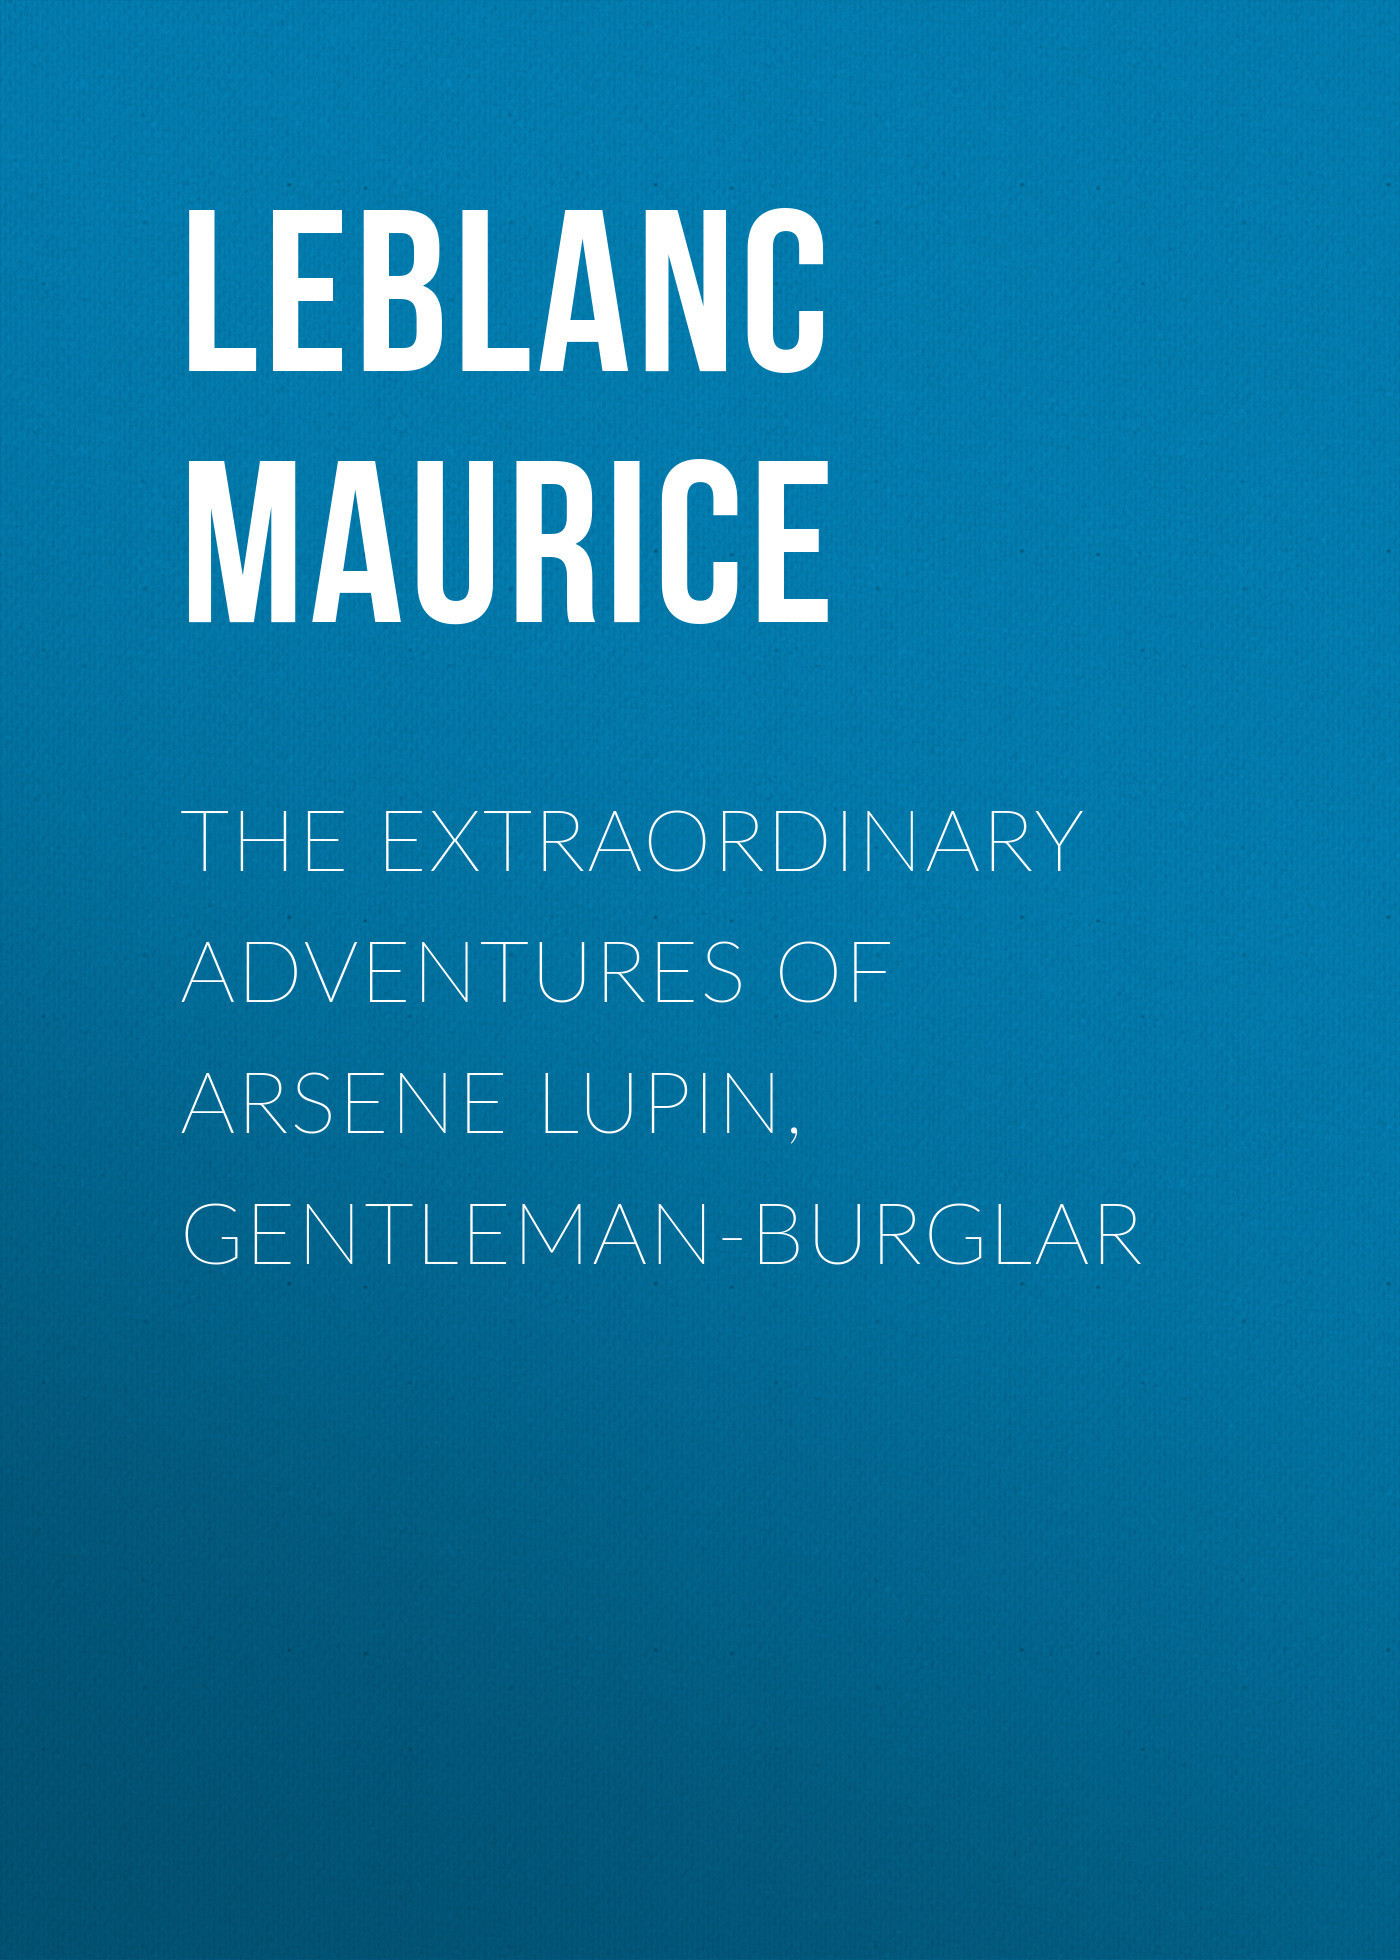 Leblanc Maurice The Extraordinary Adventures of Arsene Lupin, Gentleman-Burglar leblanc maurice the confessions of arsène lupin